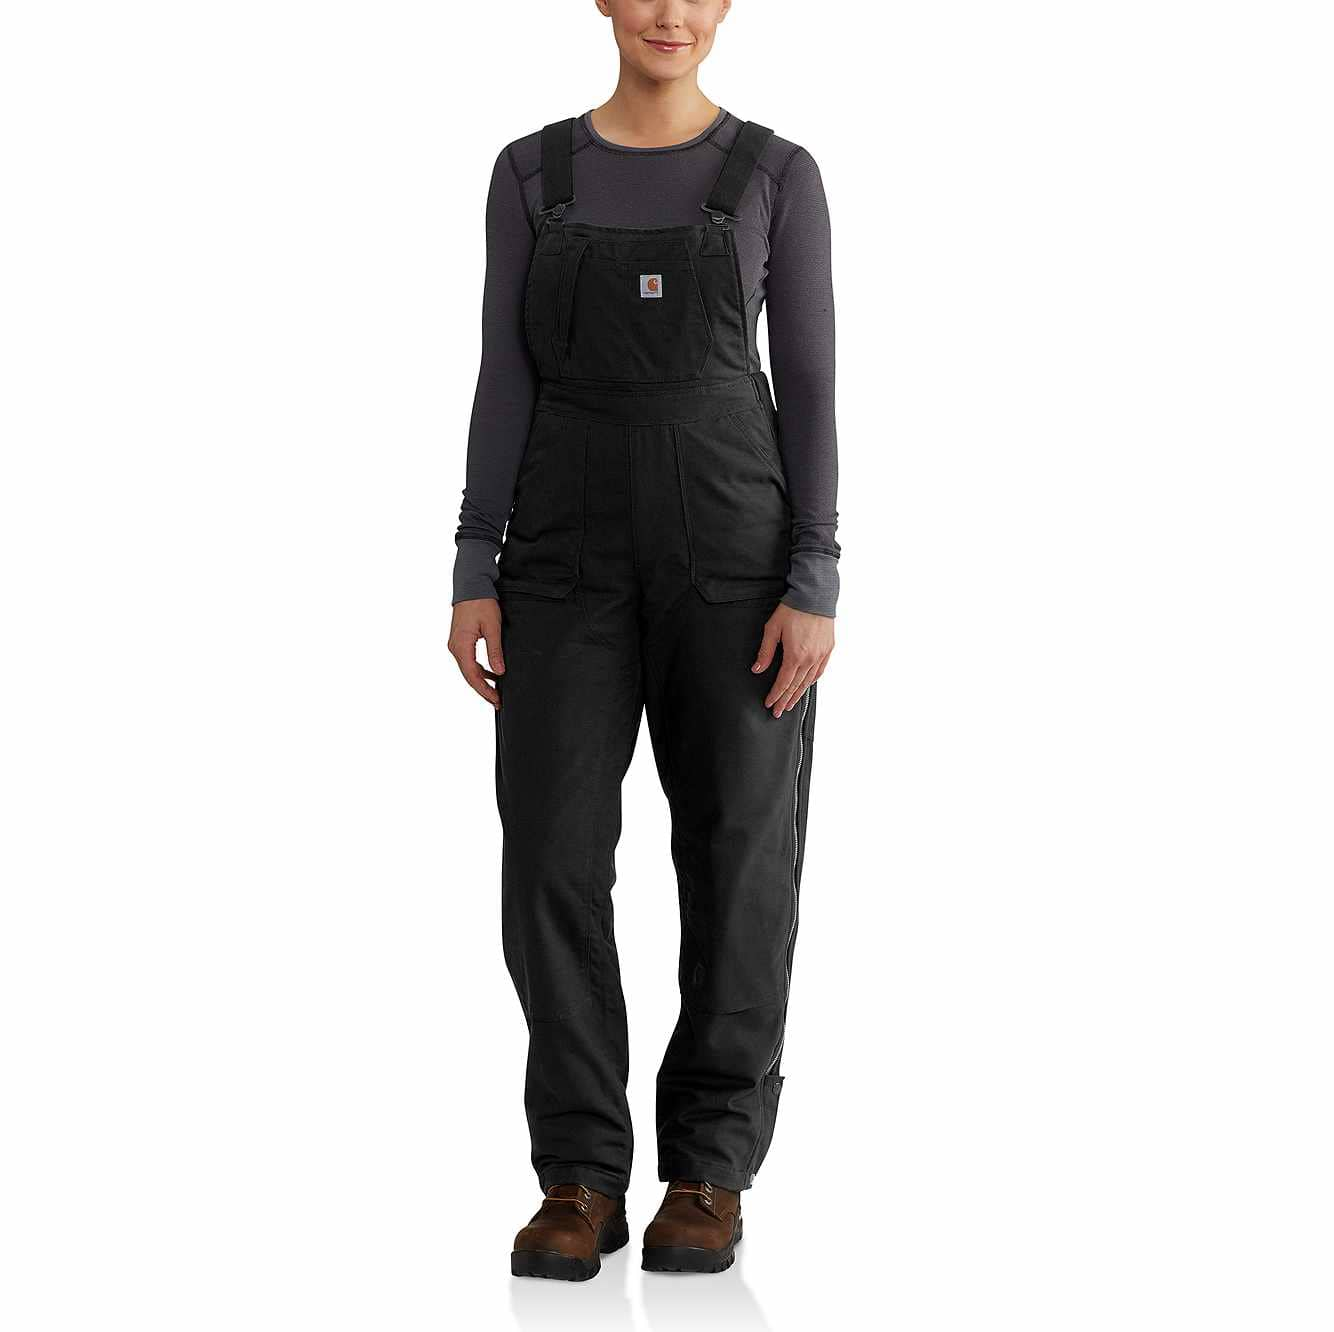 Picture of Full Swing® Cryder Bib Overalls in Black